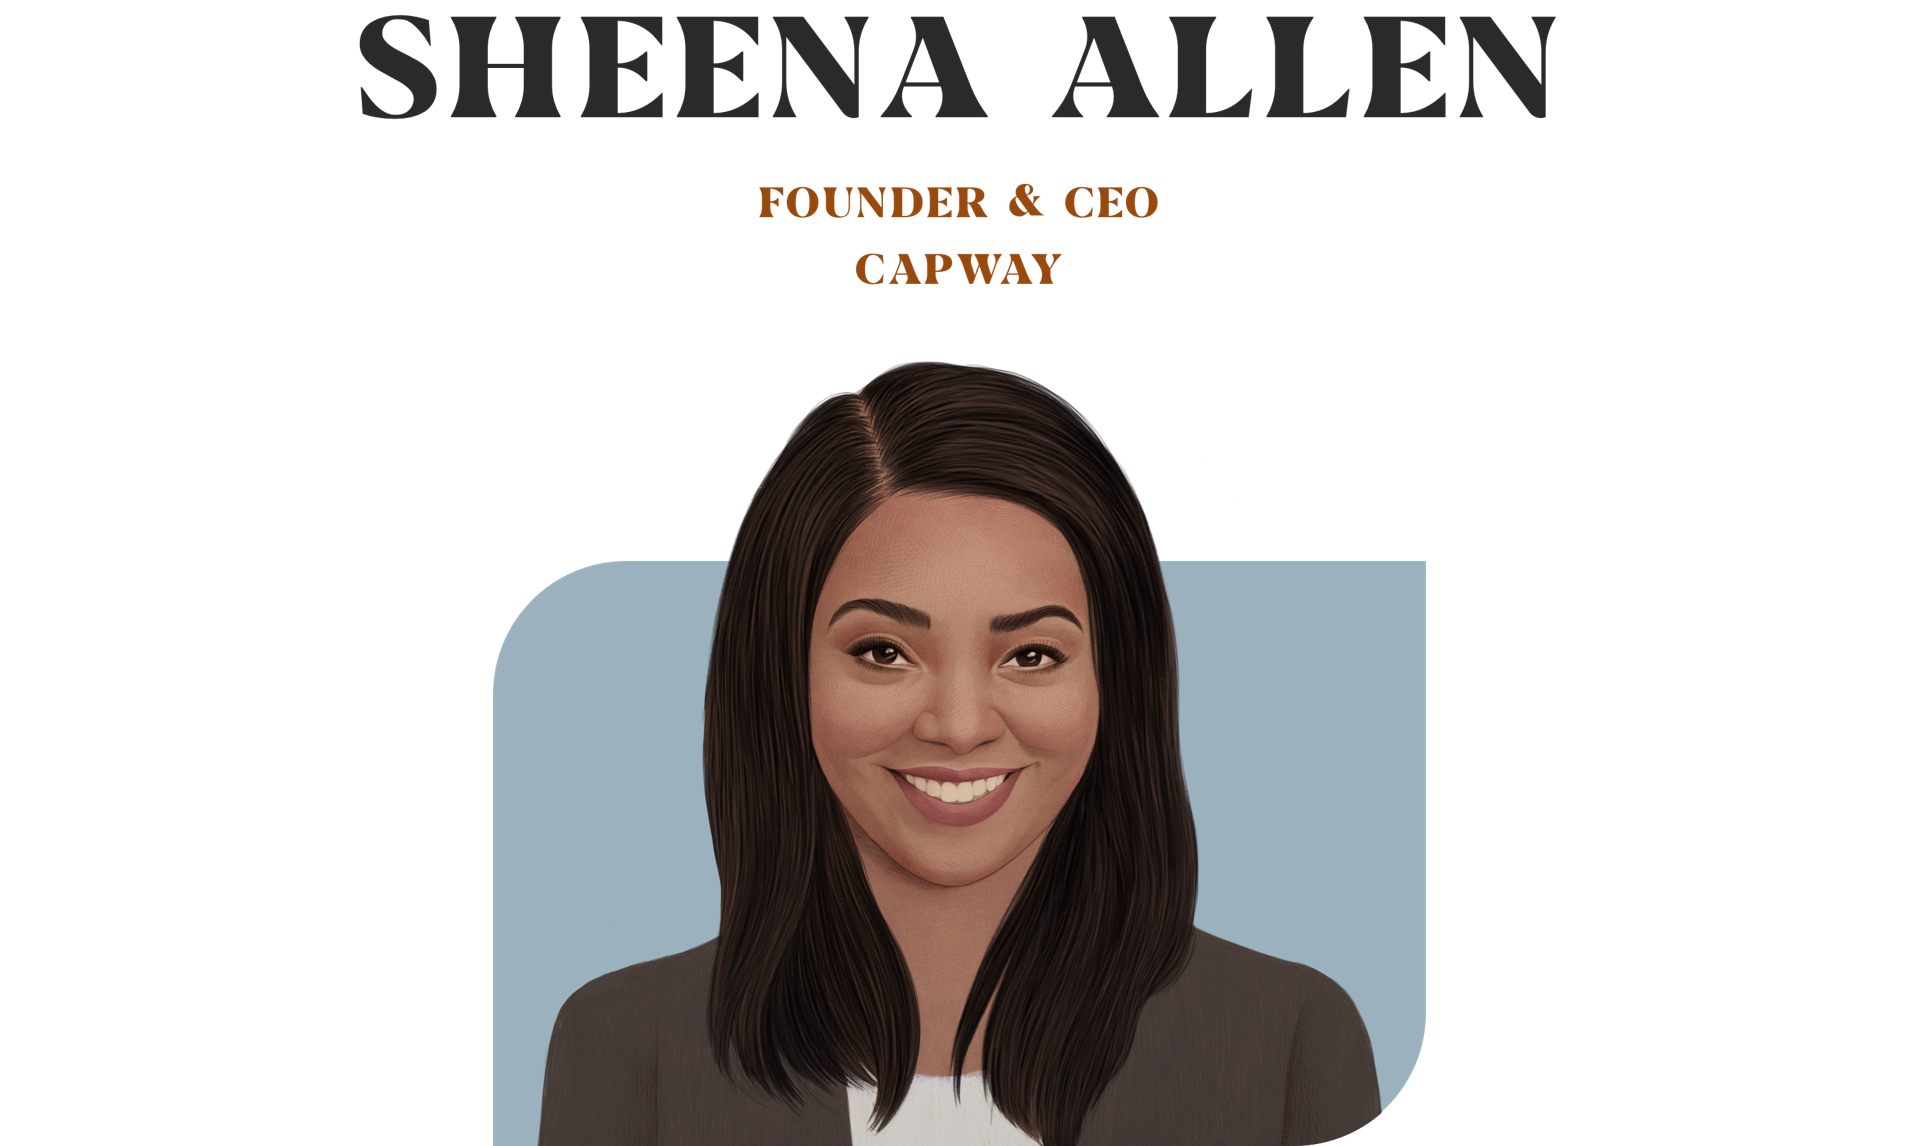 Sheena allen founder & ceo capway